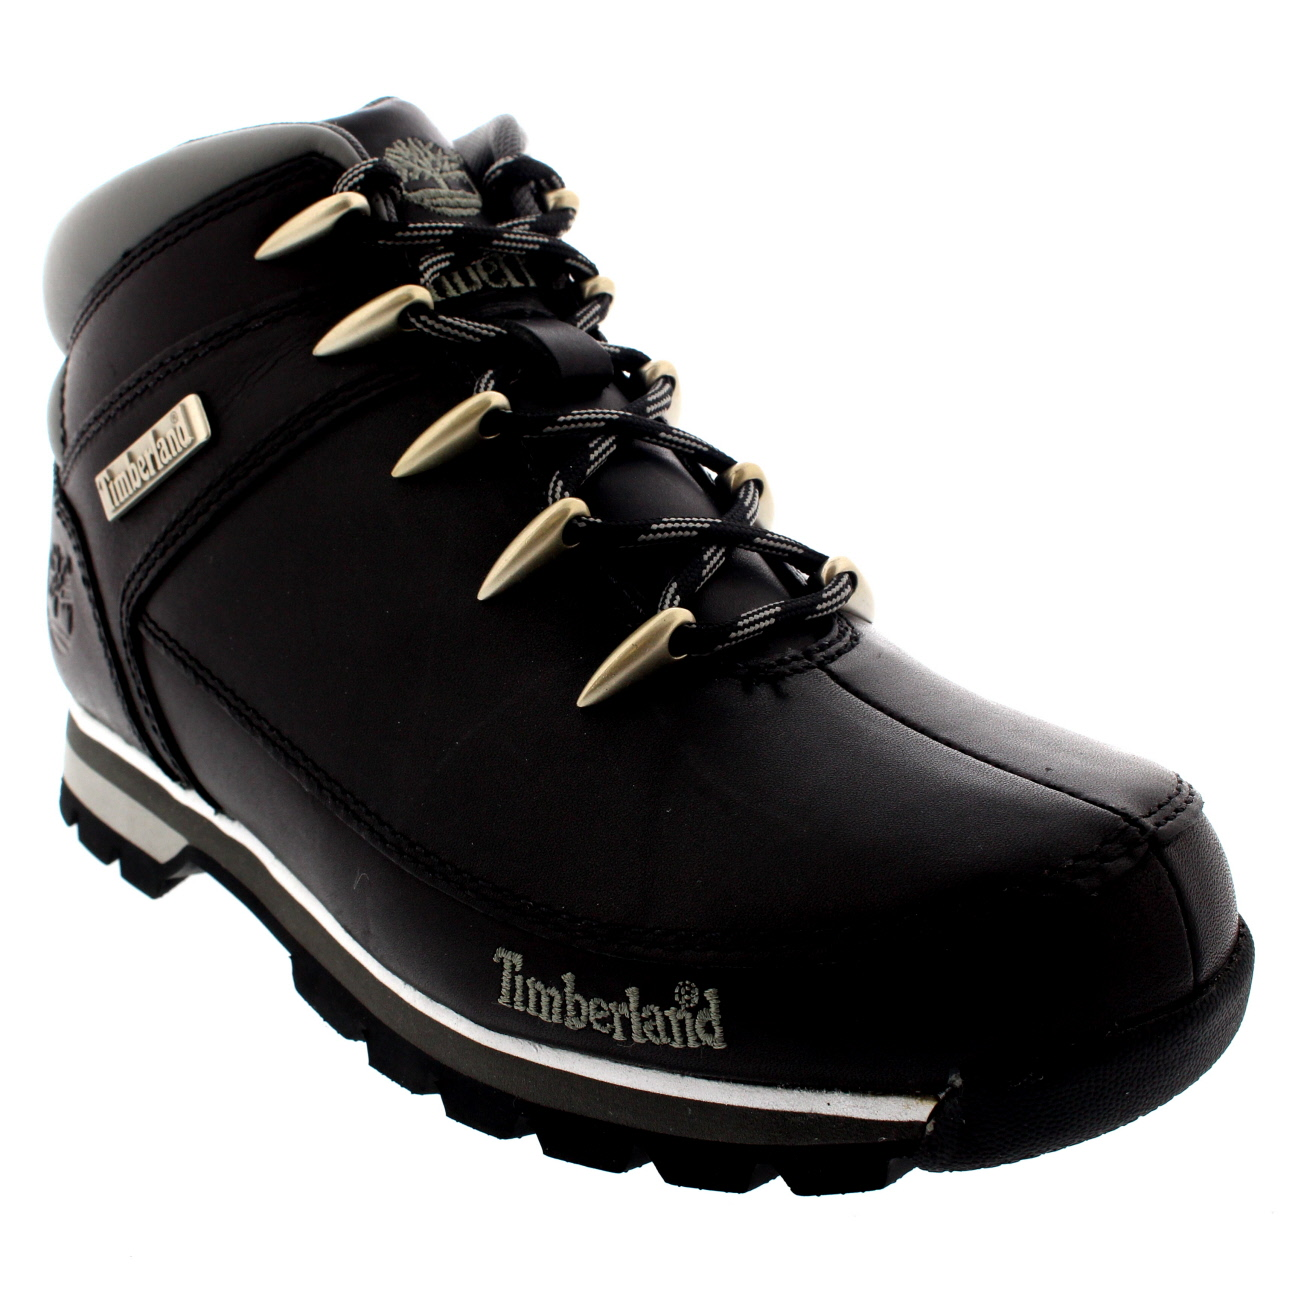 594c982e Details about Mens Timberland Euro Sprint Hiker Casual Hiking Walking Ankle  Boots US 7-12.5